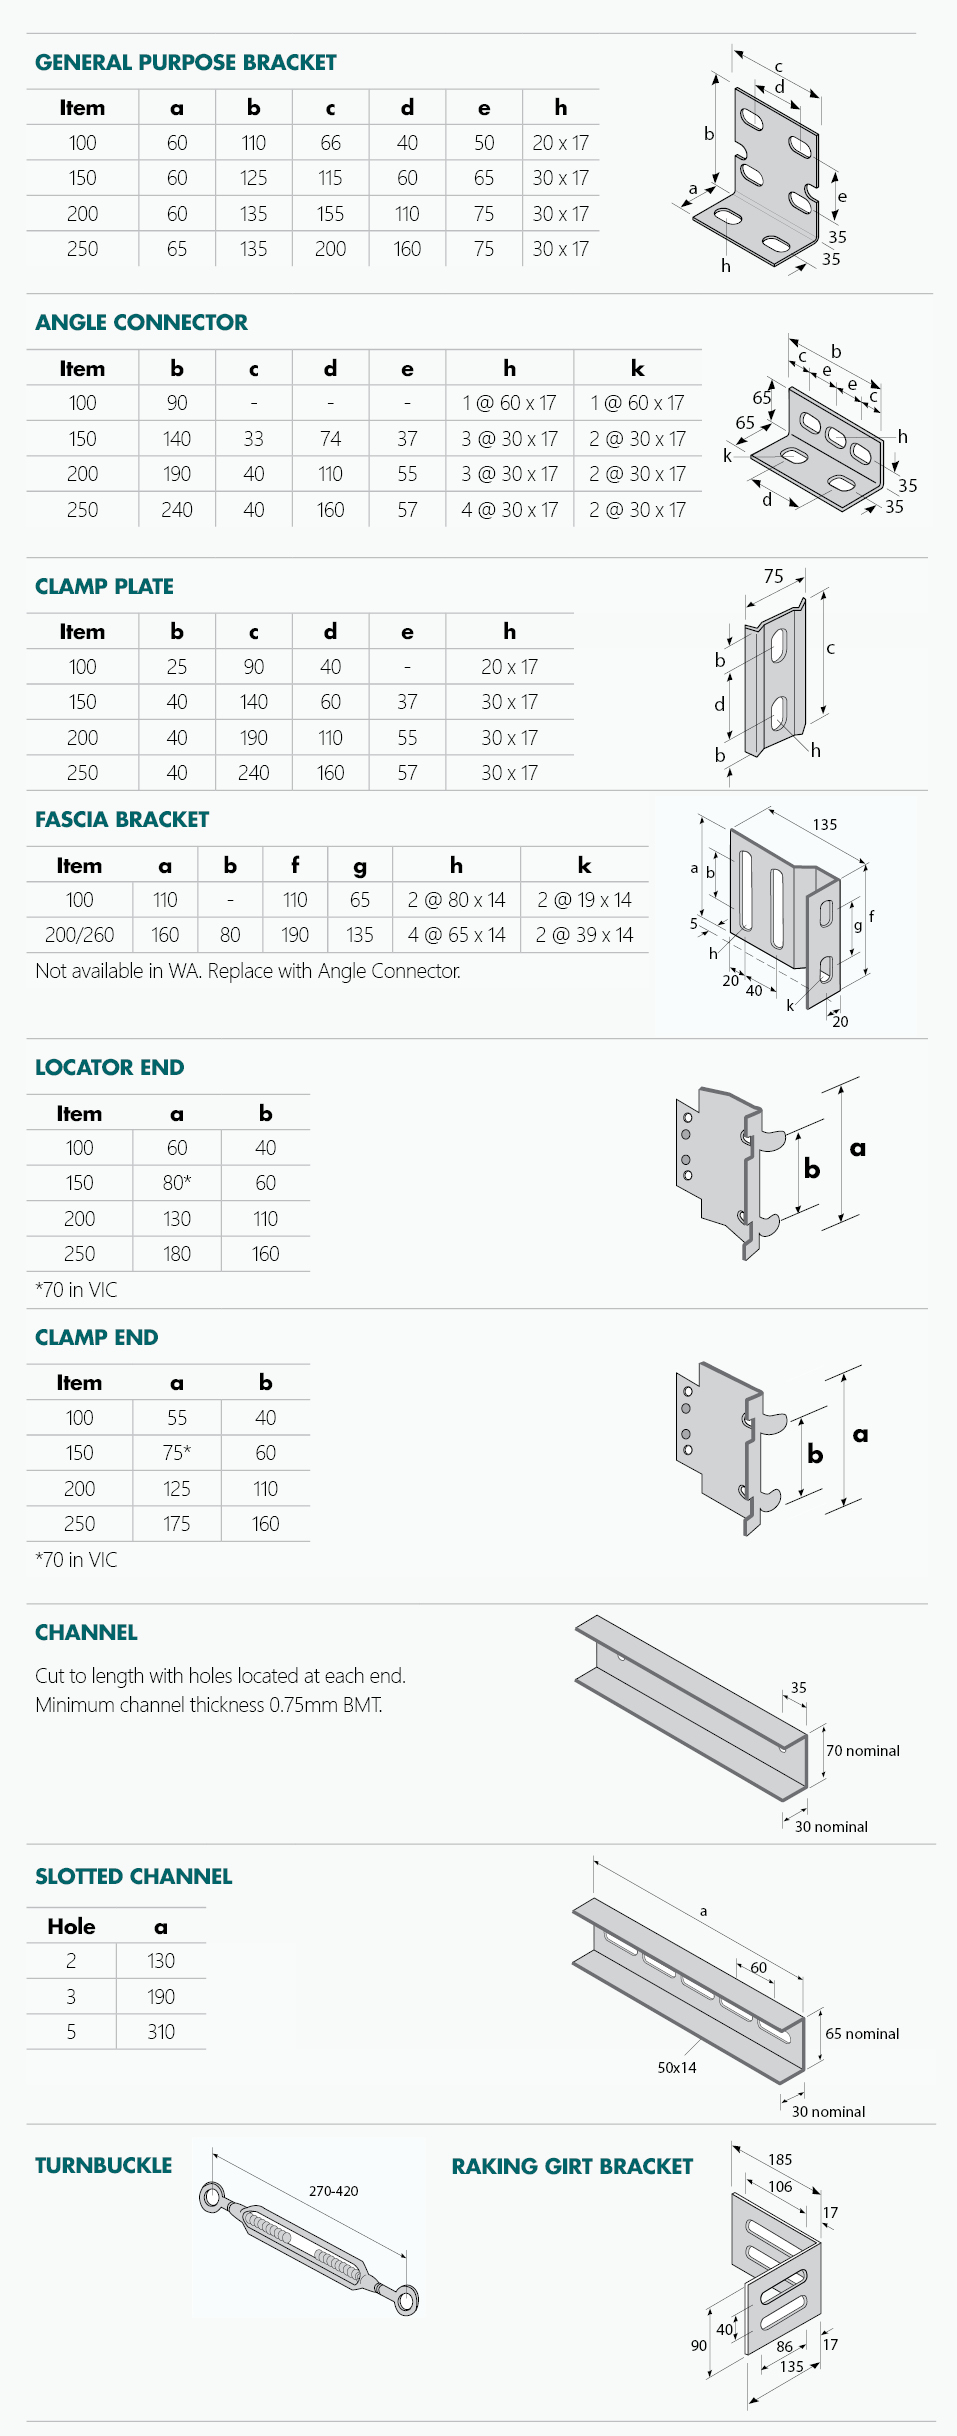 table of components and specification